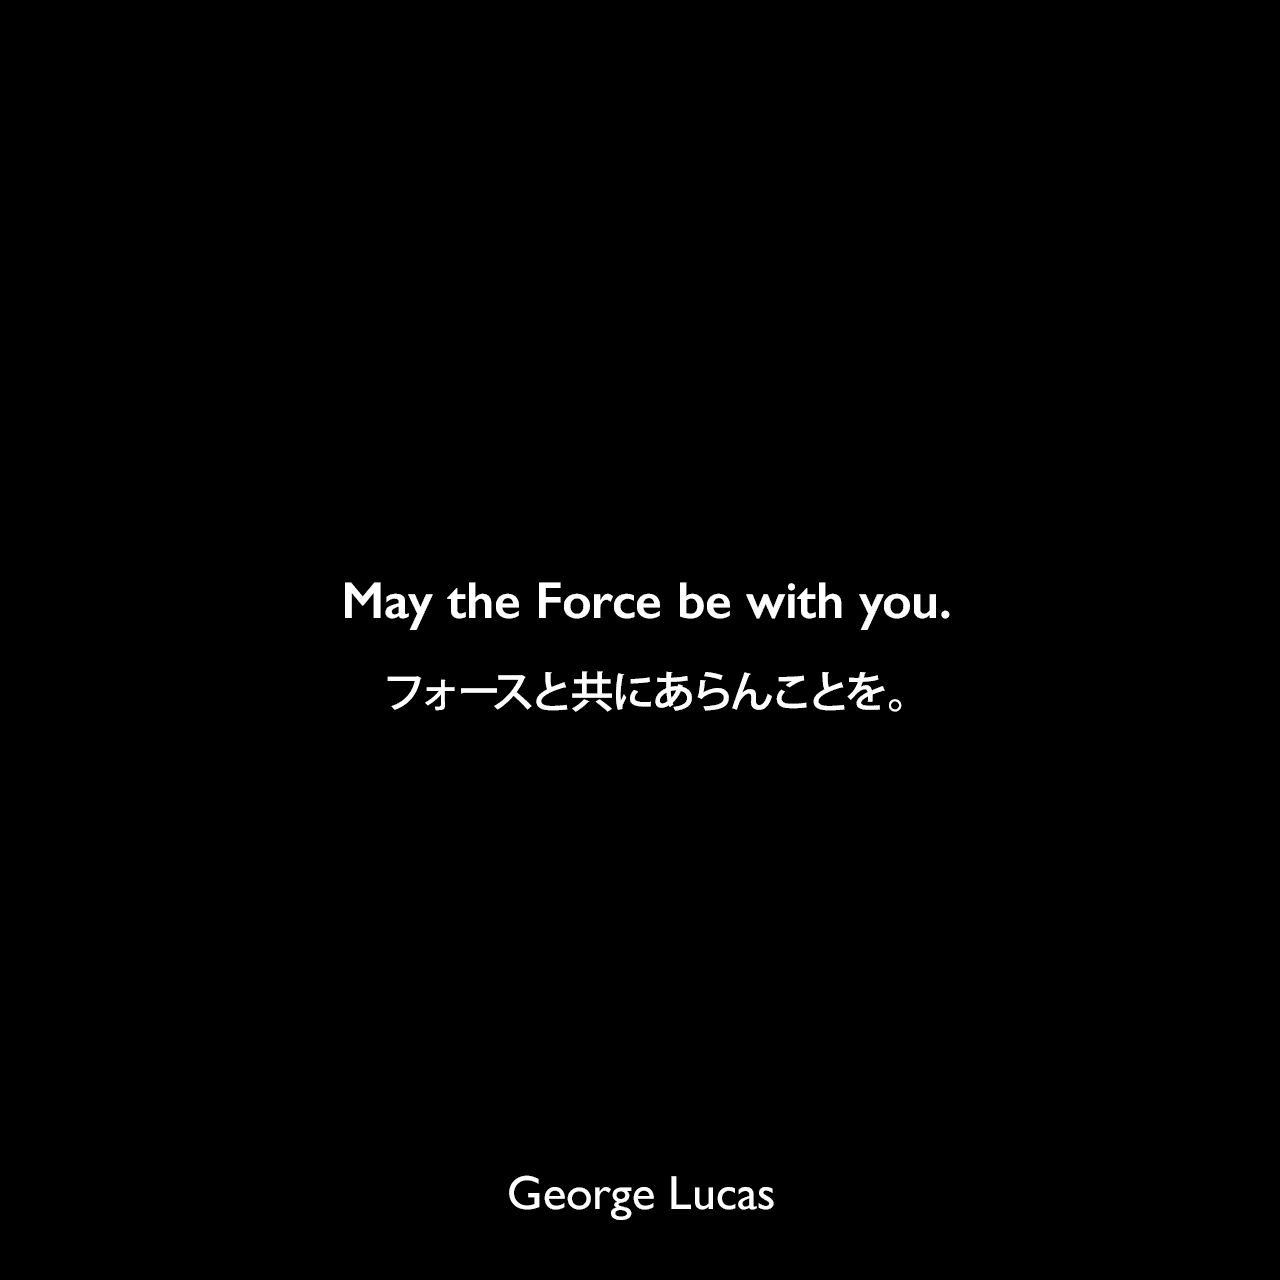 May the Force be with you.フォースと共にあらんことを。-スター・ウォーズシリーズの名言George Lucas